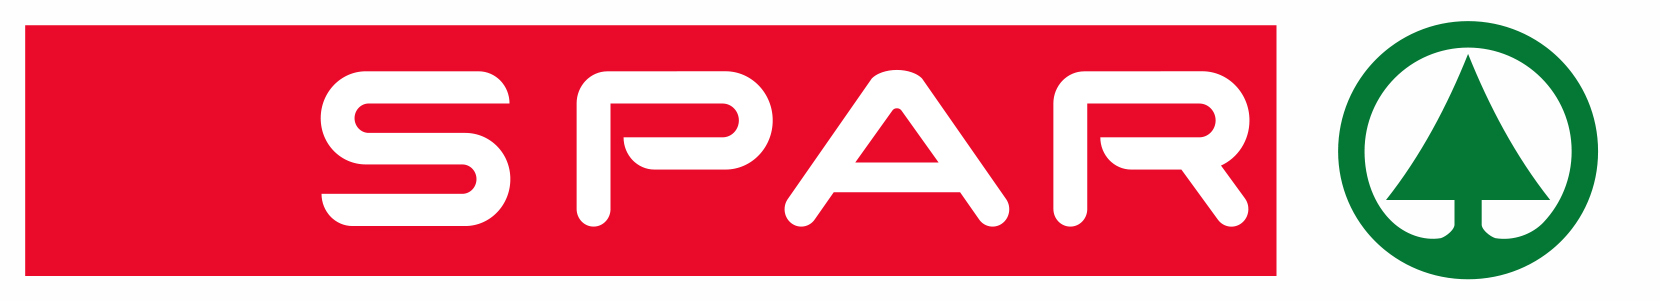 SPAR UK LTD